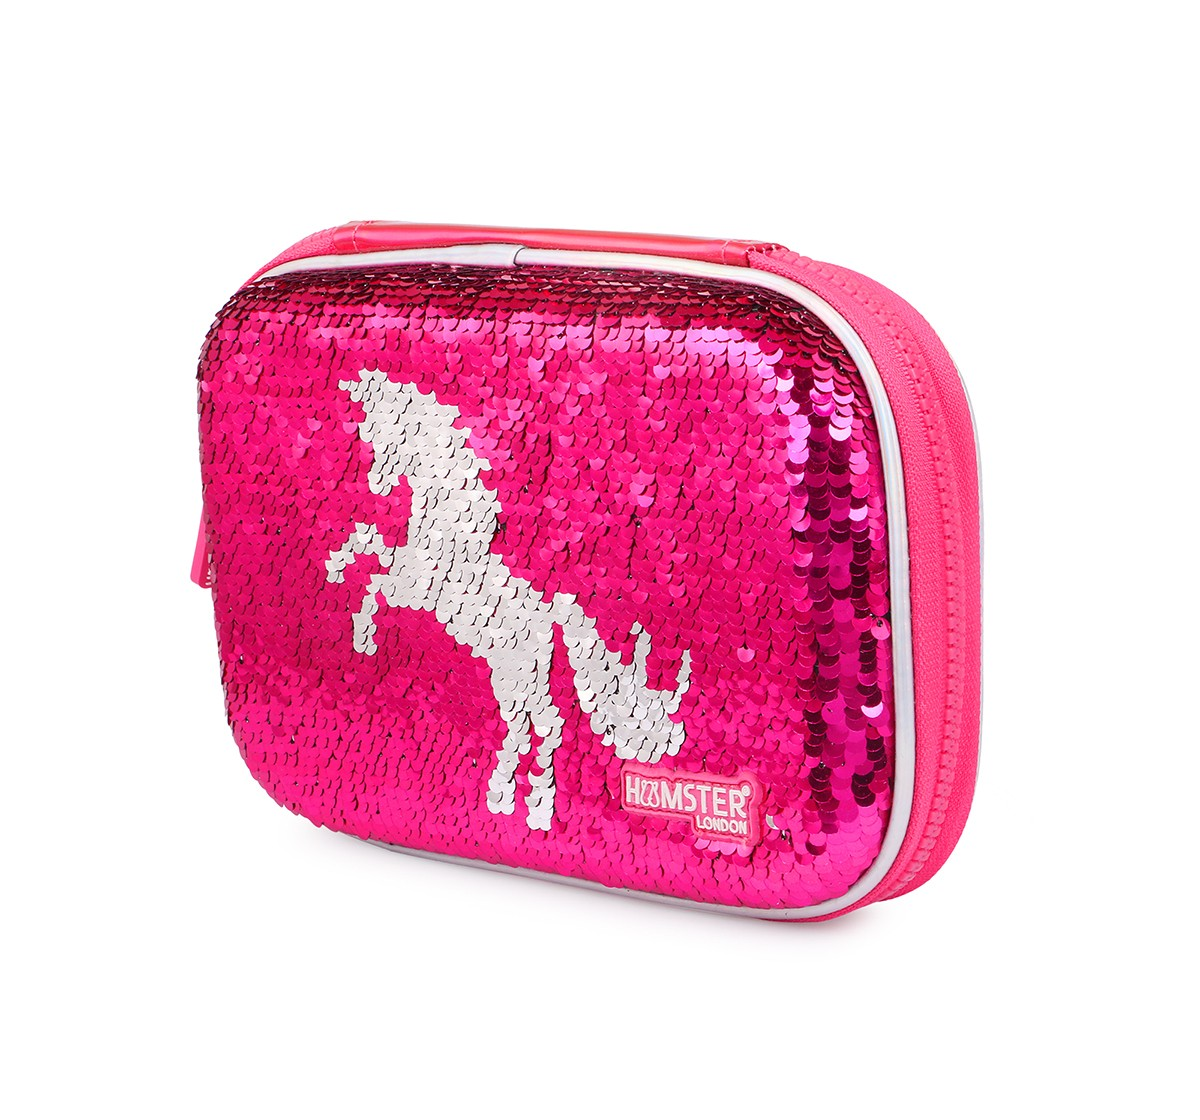 Hamster London Sequence Unicorn Stationery Hardcase for Girls age 3Y+ (Pink)